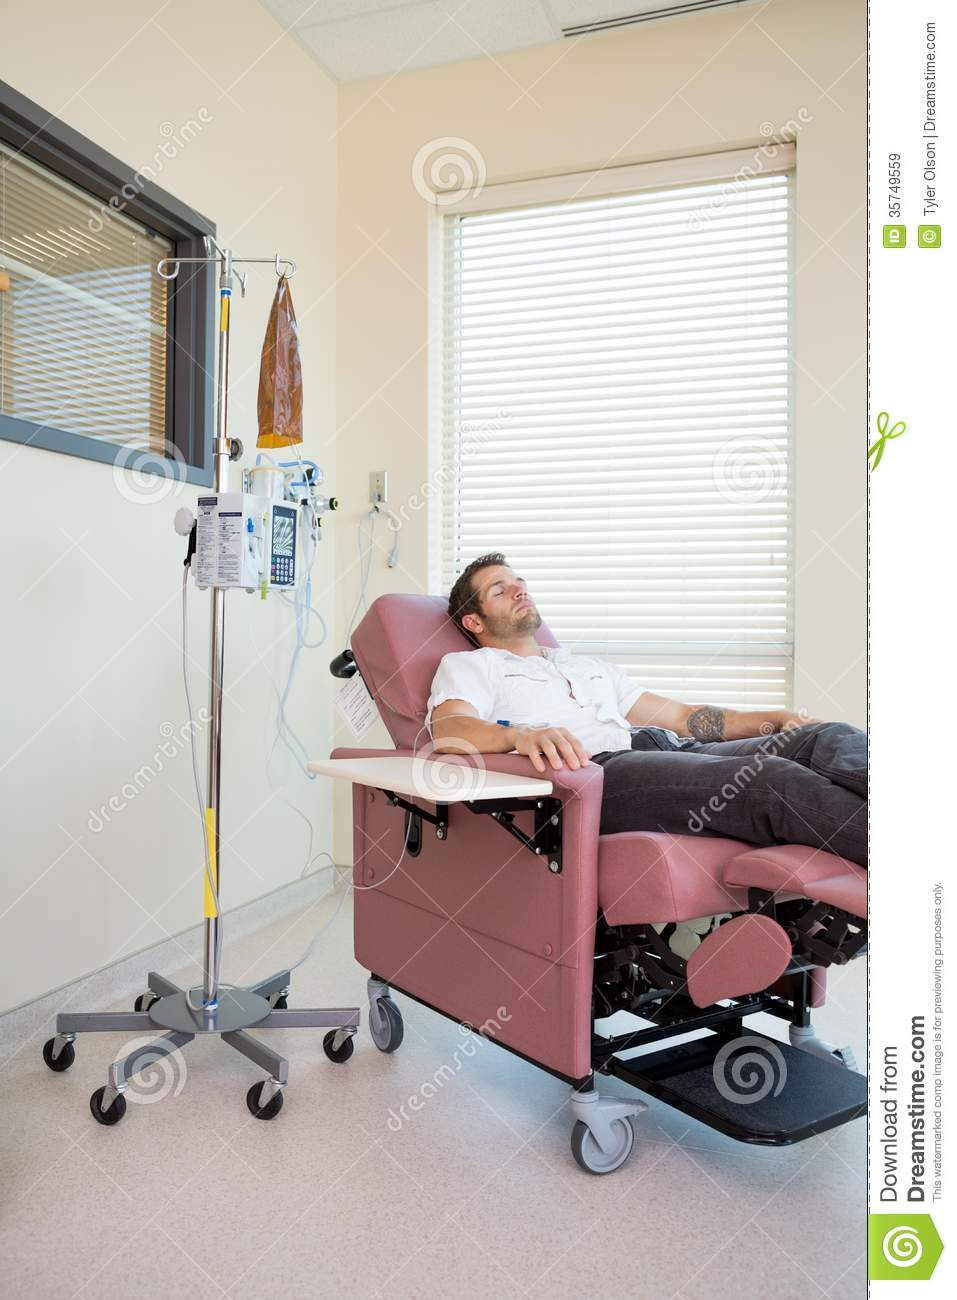 Chemotherapy Room Design: Patient Relaxing During Chemotherapy Royalty Free Stock